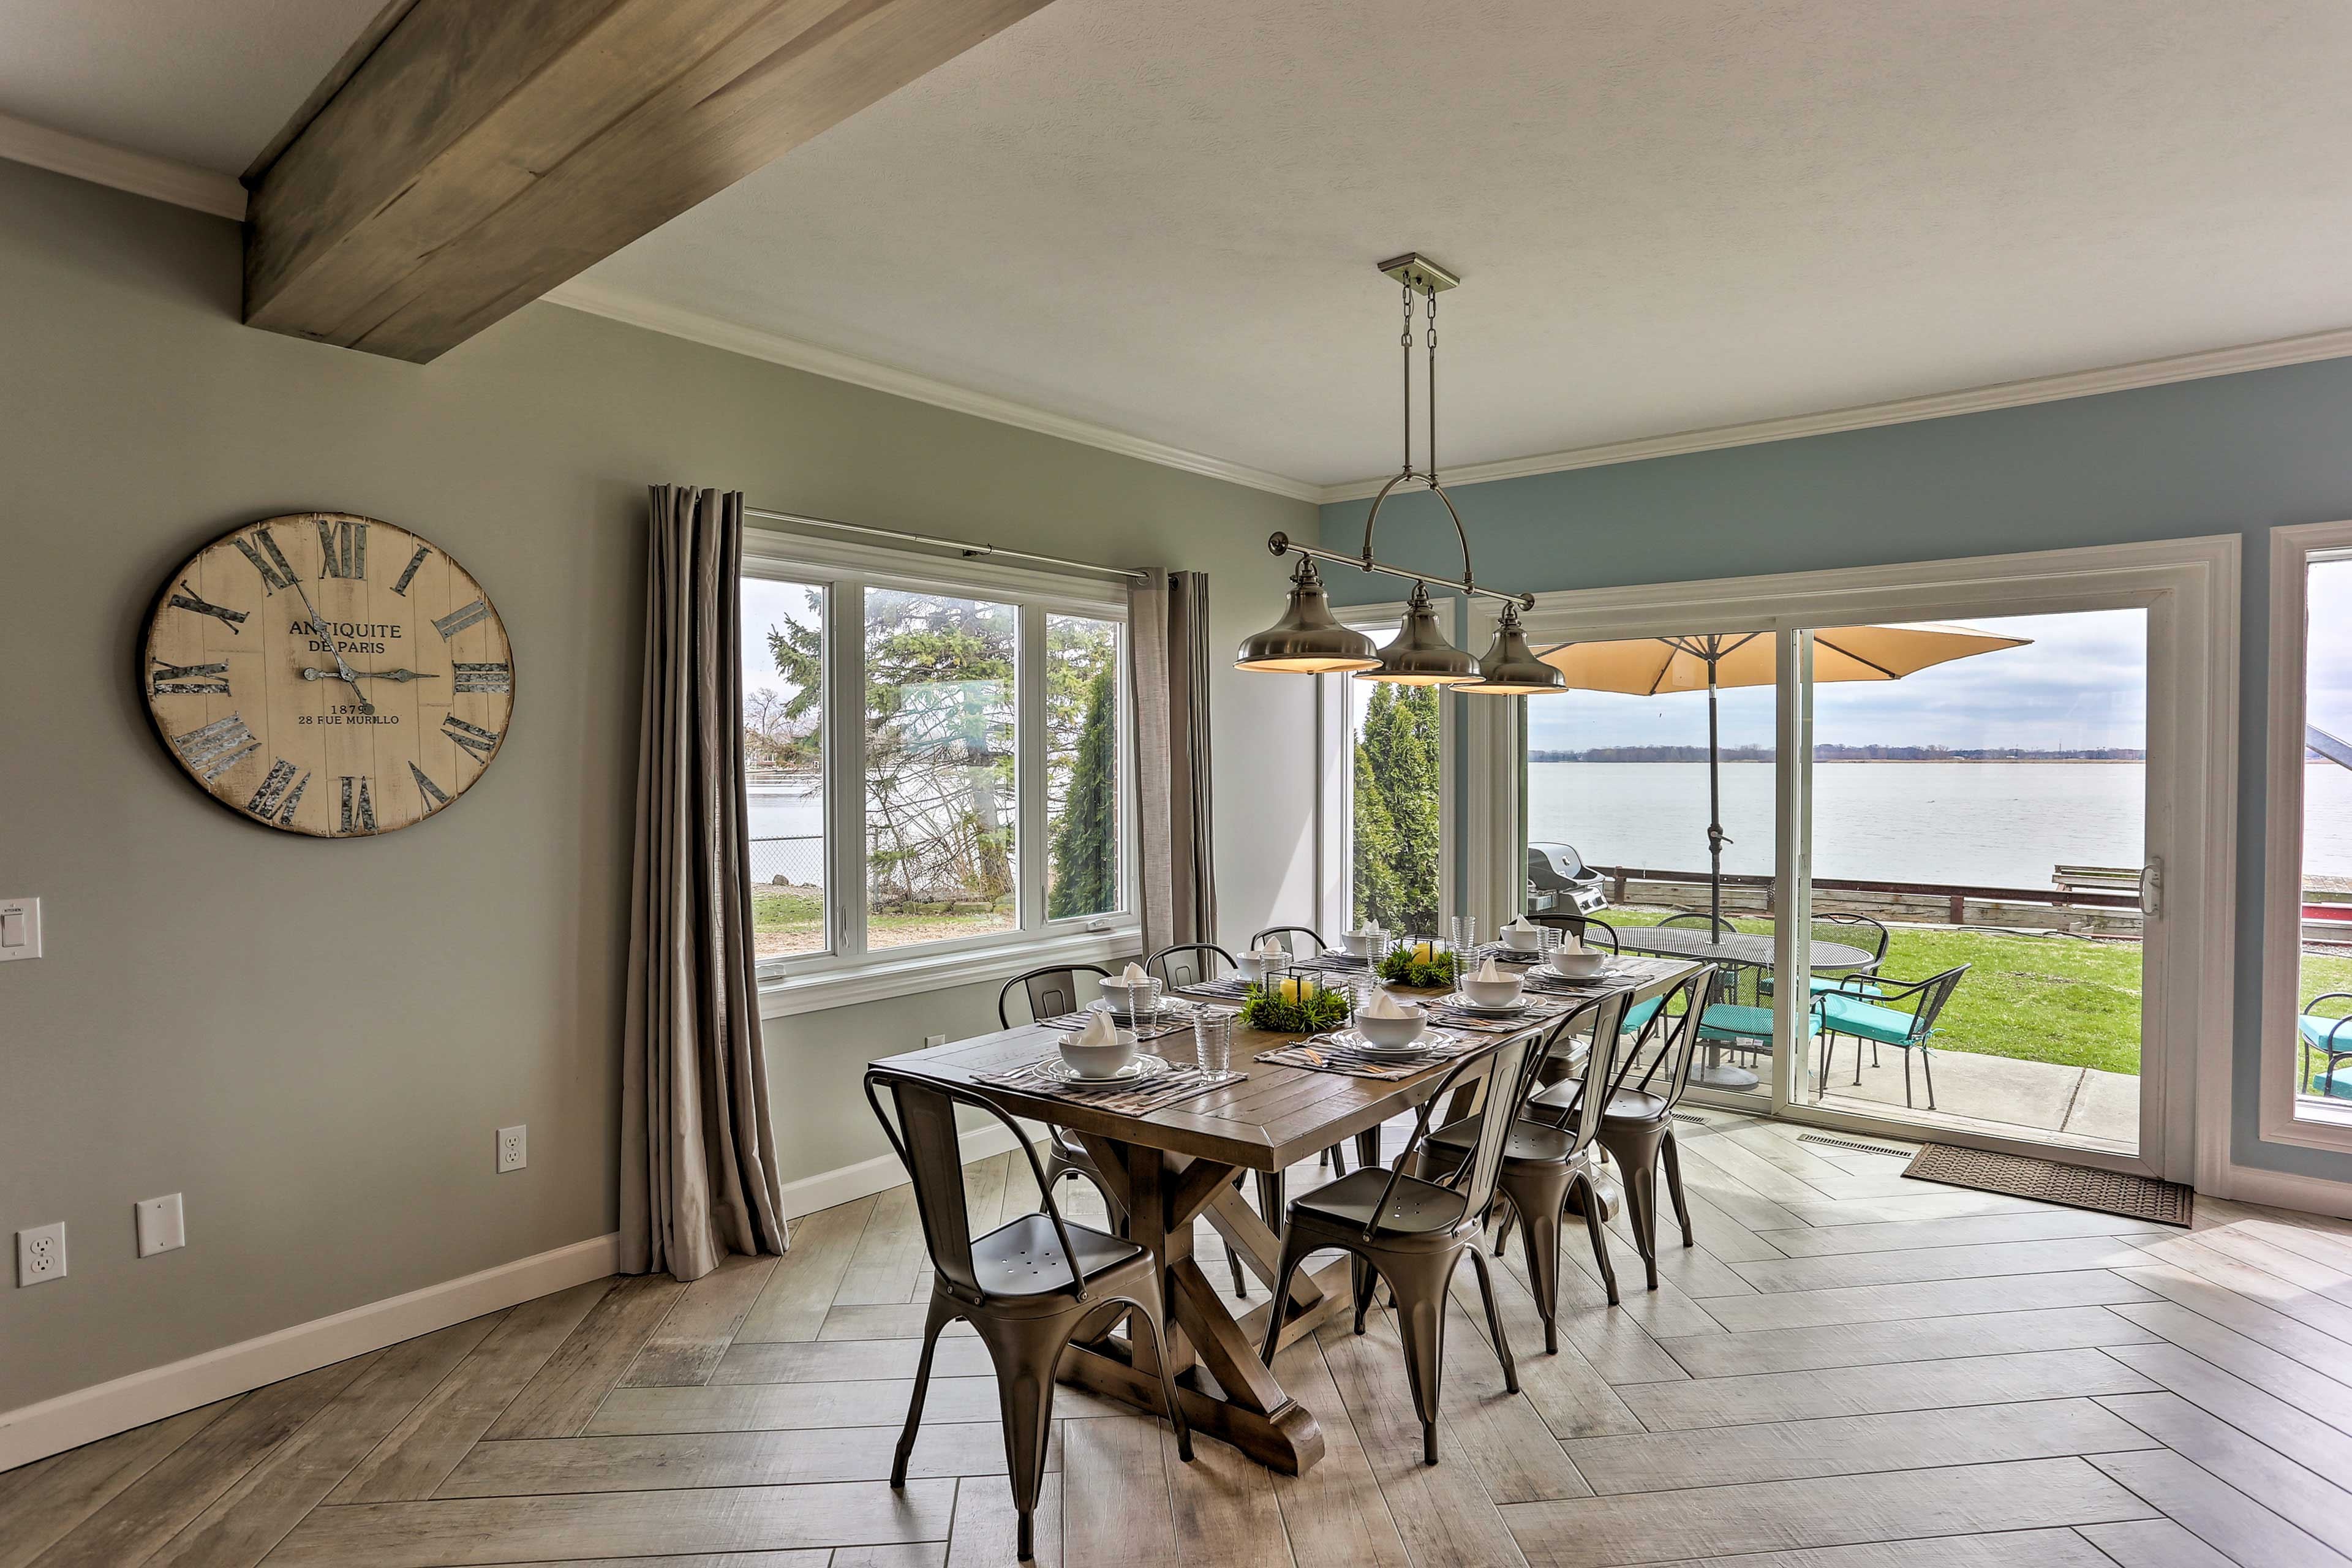 Gather at the 8-person dining table to savor home-cooked meals.